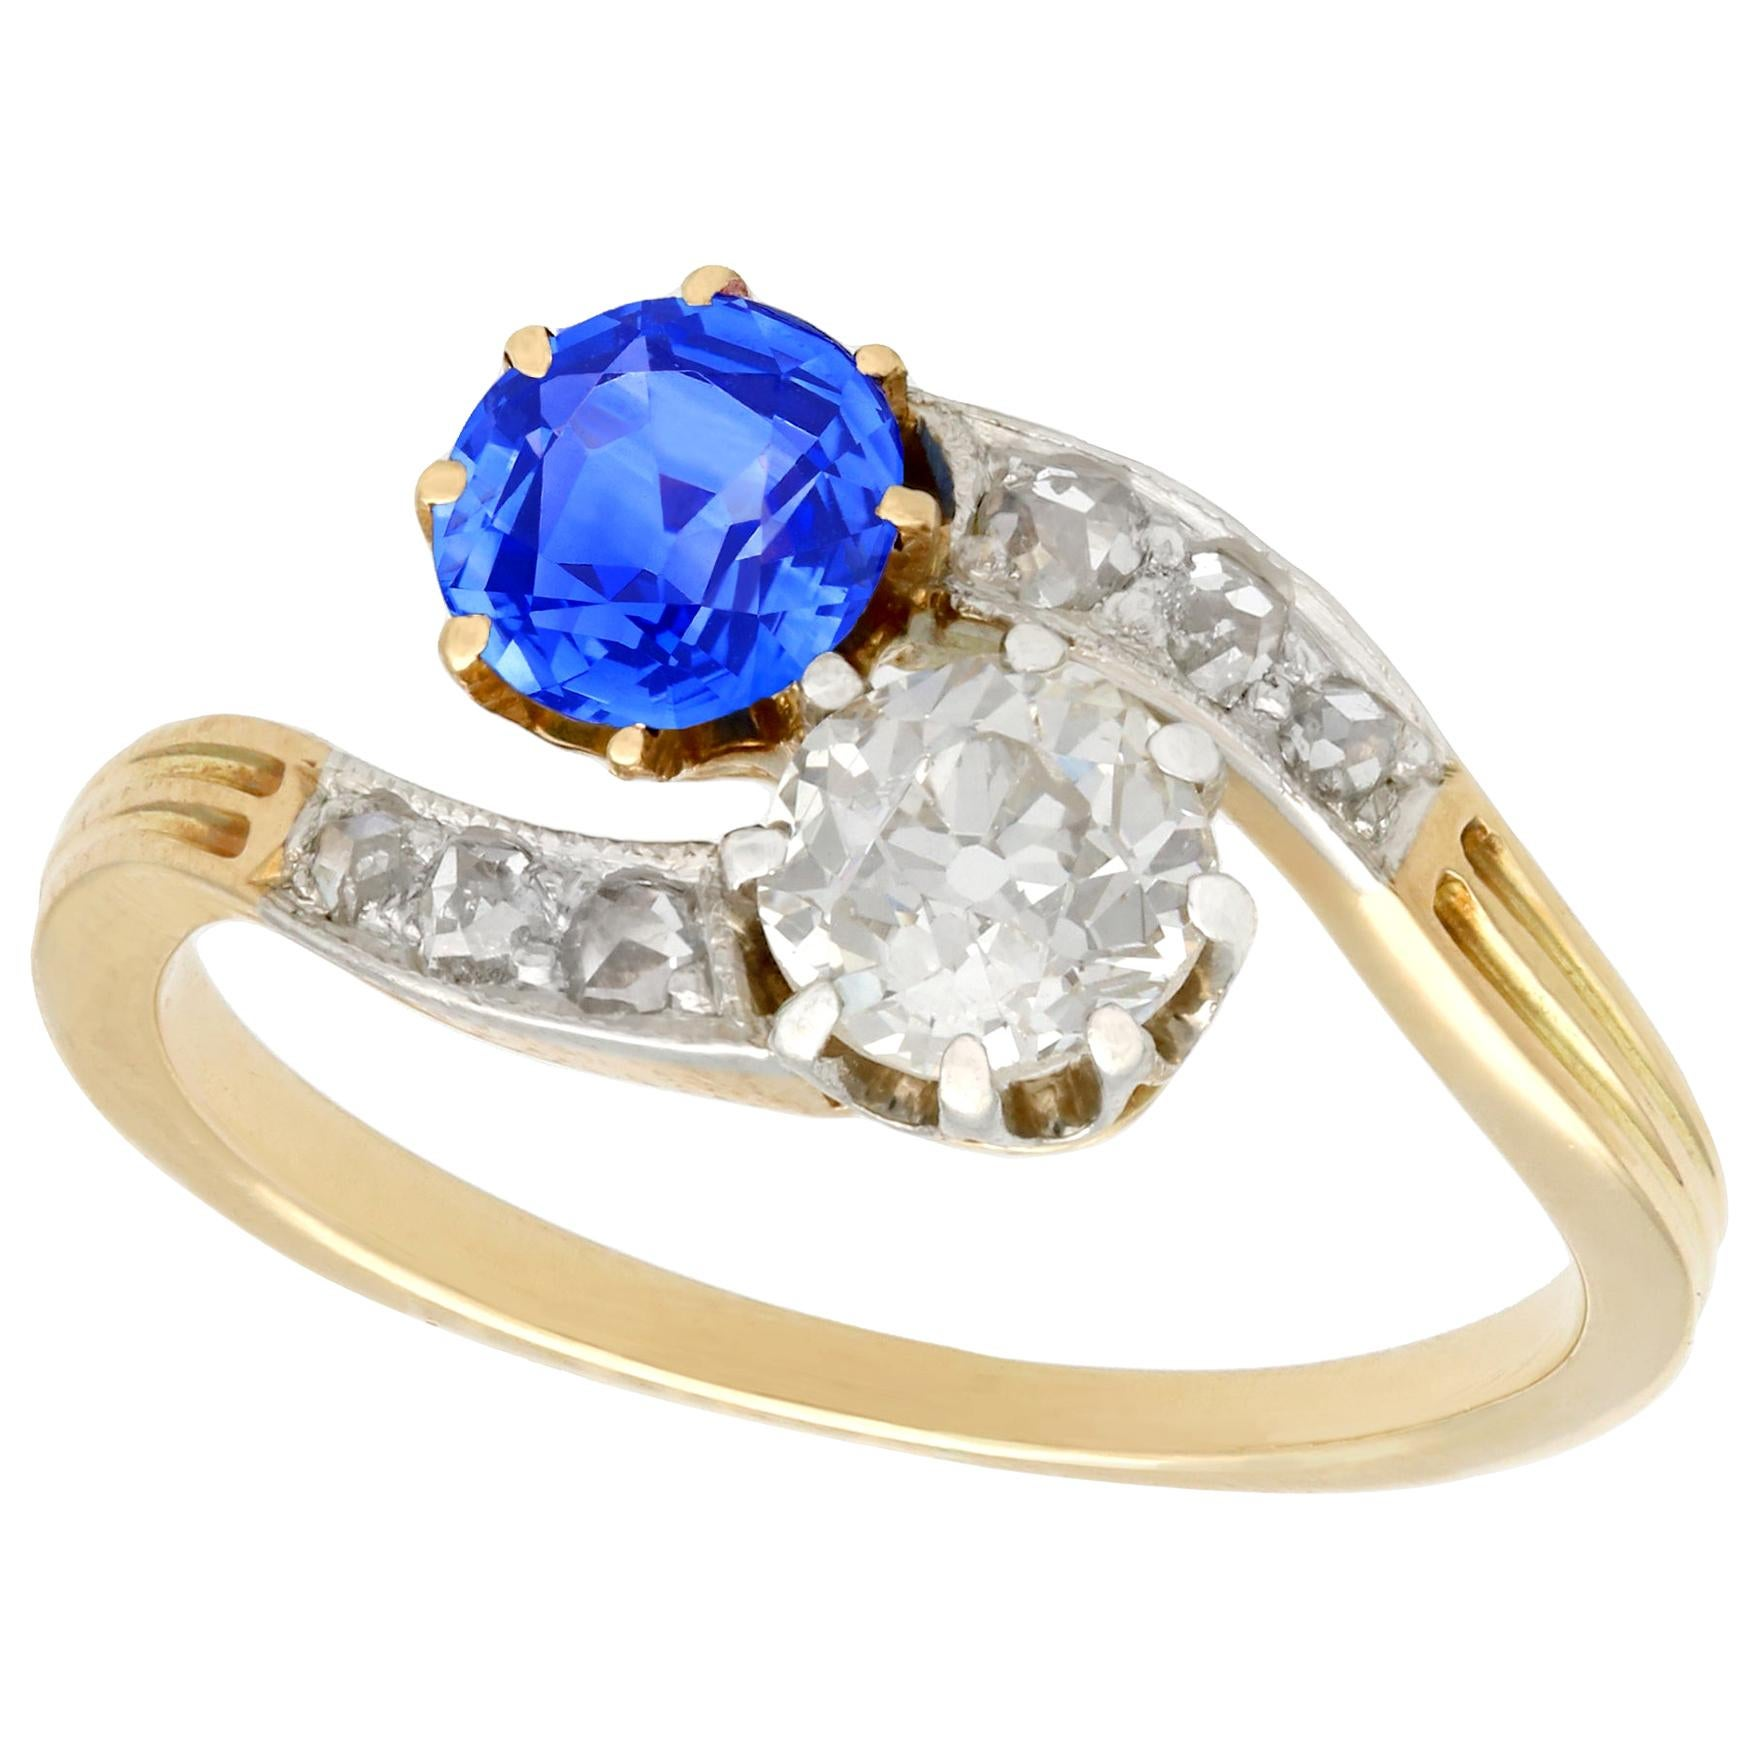 1910 Antique Sapphire and Diamond Yellow Gold Twist Ring